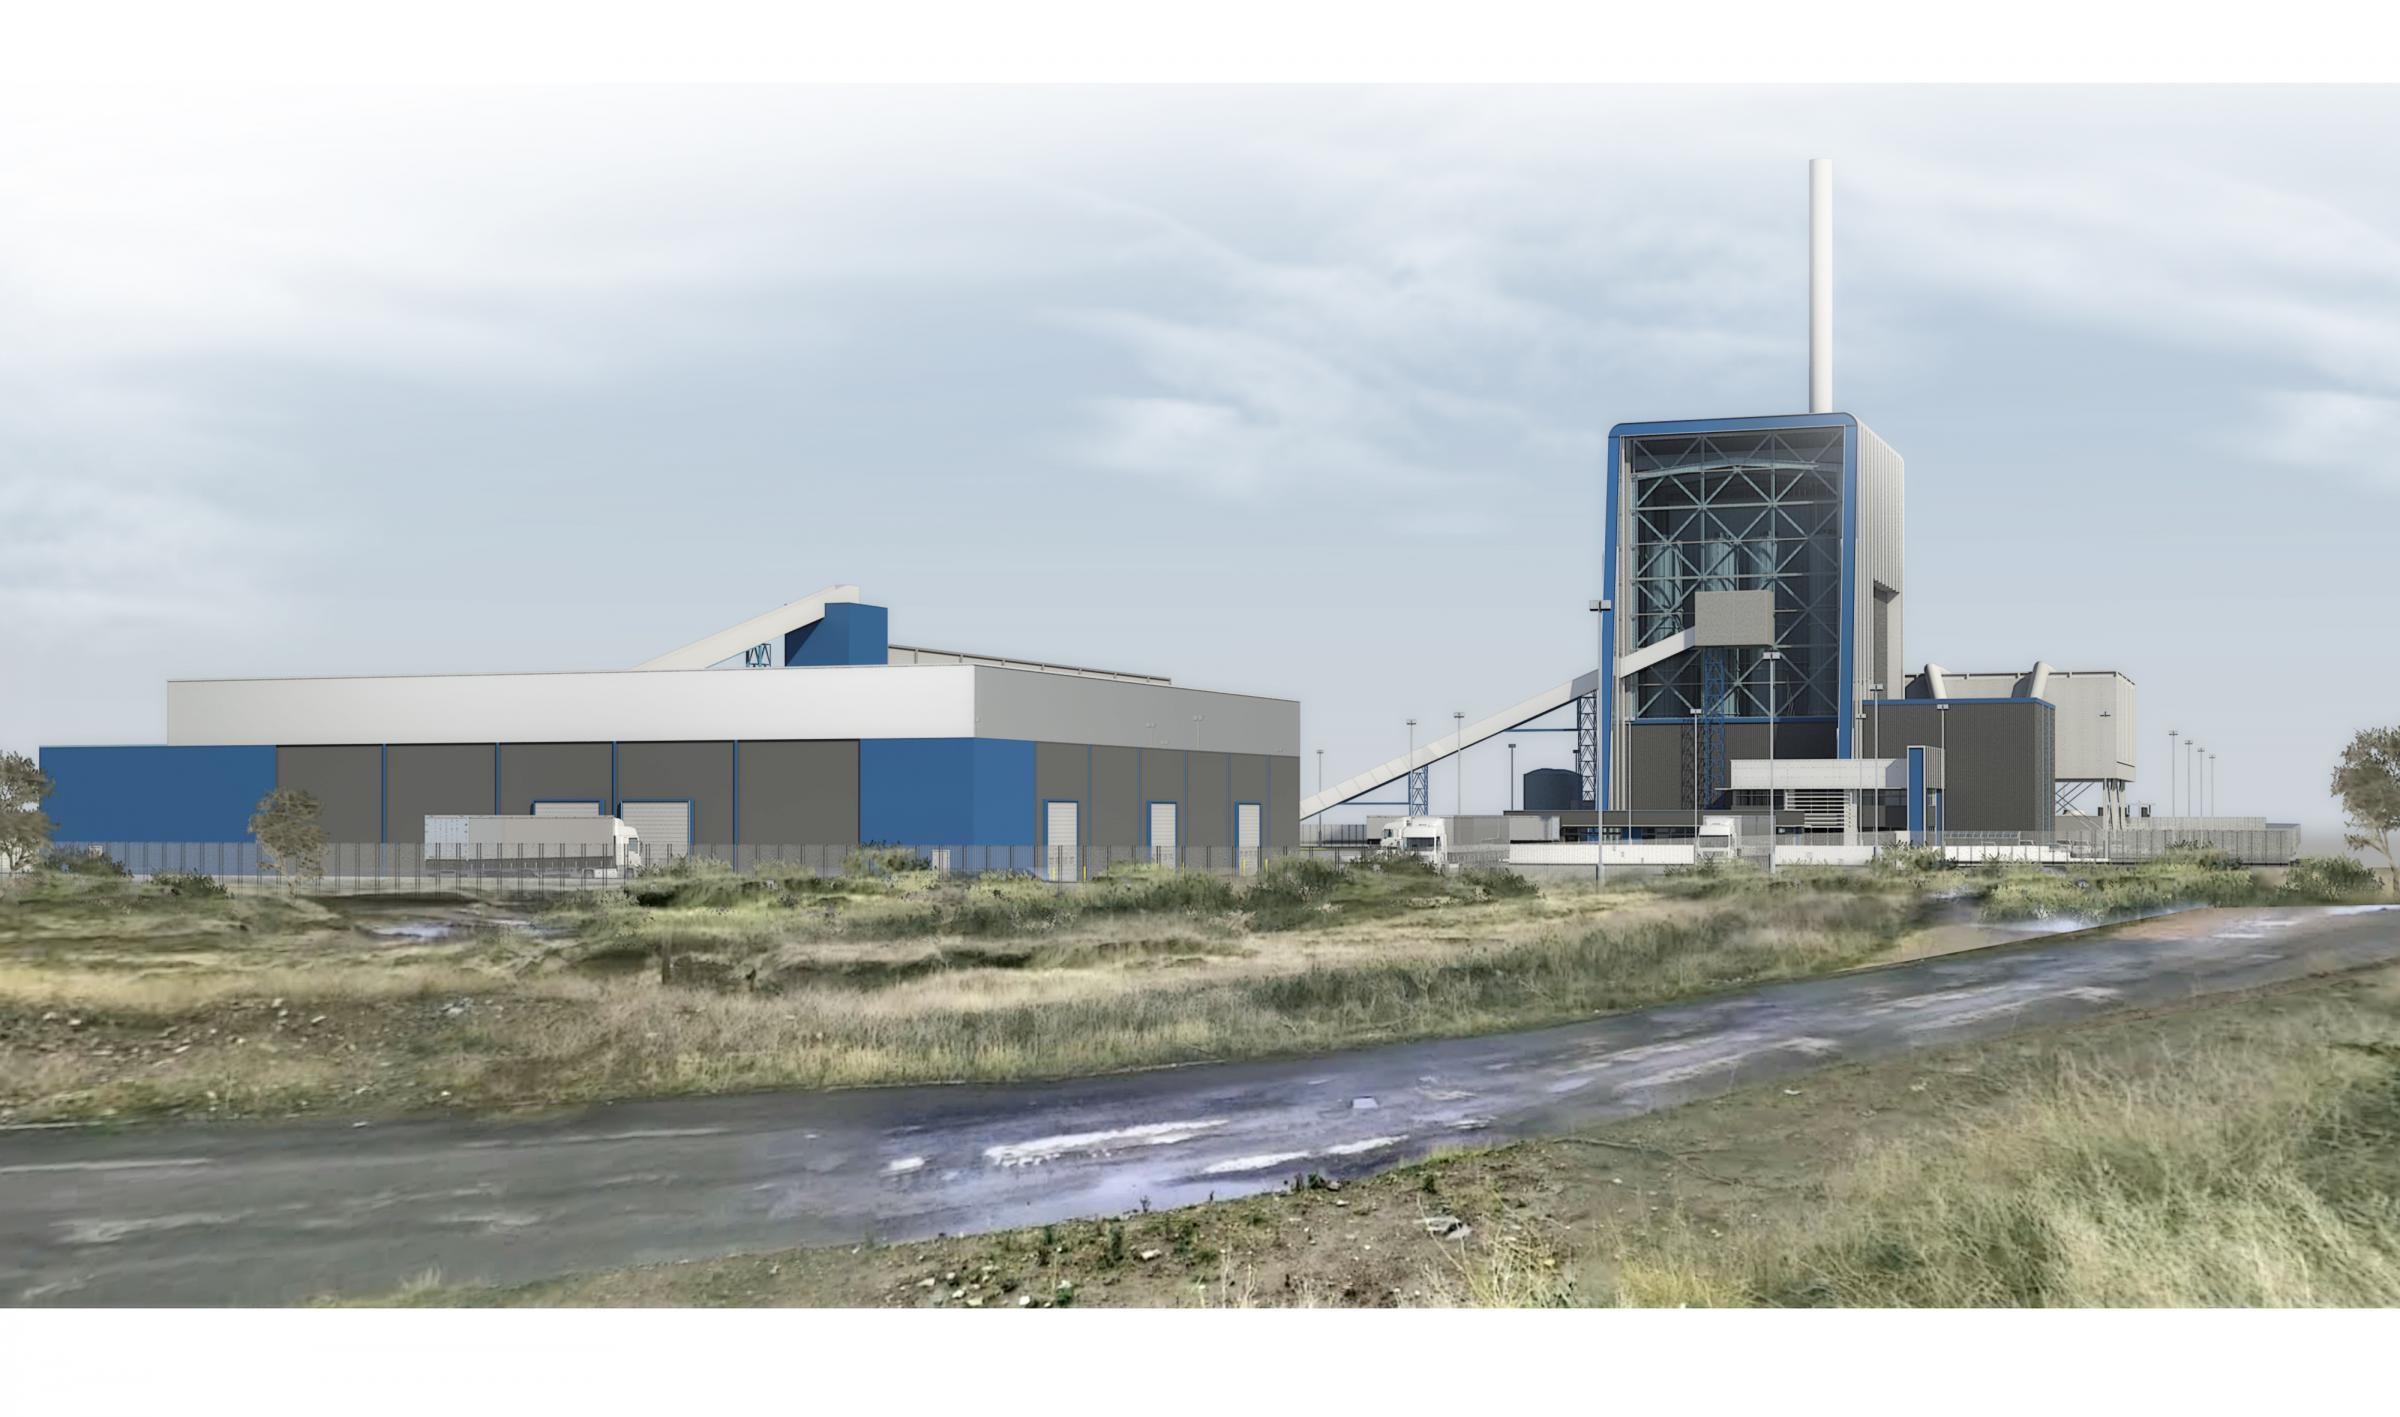 NEW BUILD: An artist's impression of the biomass plant at Port Clarence